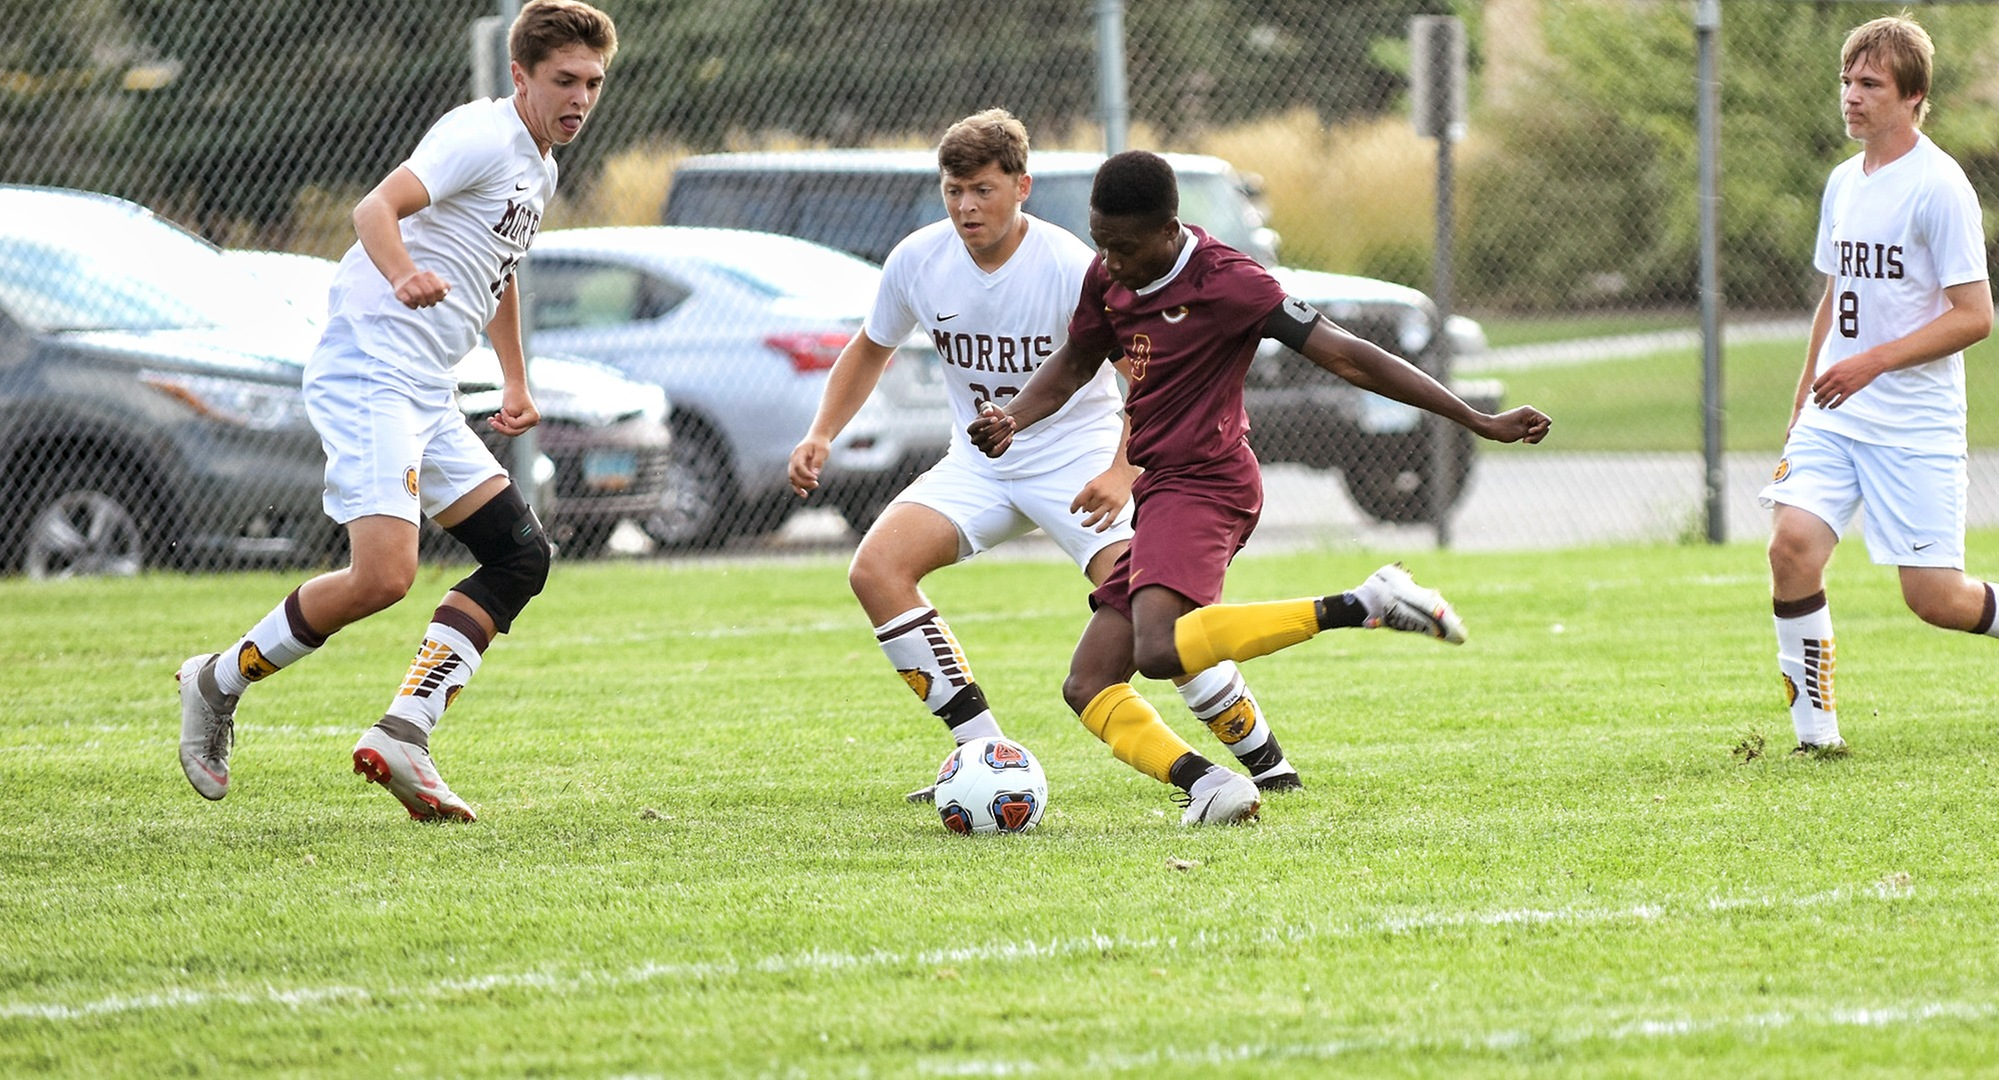 Senior Aronah Mukhtar is surrounded by three Minn.-Morris defenders as he tries to take a shot on goal. Mukhtar had a goal and an assist in the Cobbers' 4-1 win.